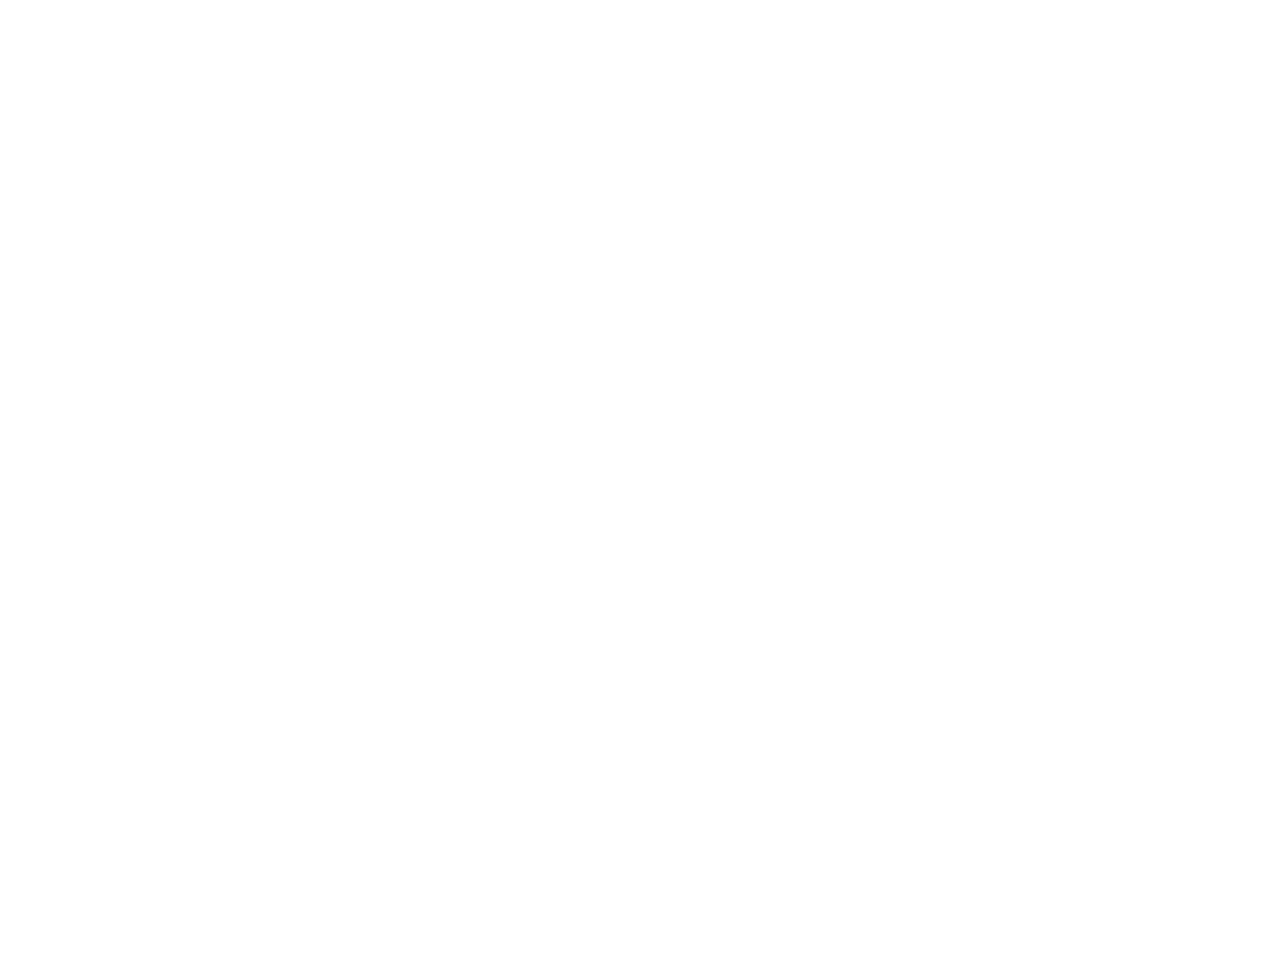 As of Q4 2020, there were approximately 11,000 EVs registered in Tennessee. Our goal, established by Drive Electric Tennessee, is to increase EV adoption to 200,000 vehicles by 2028.